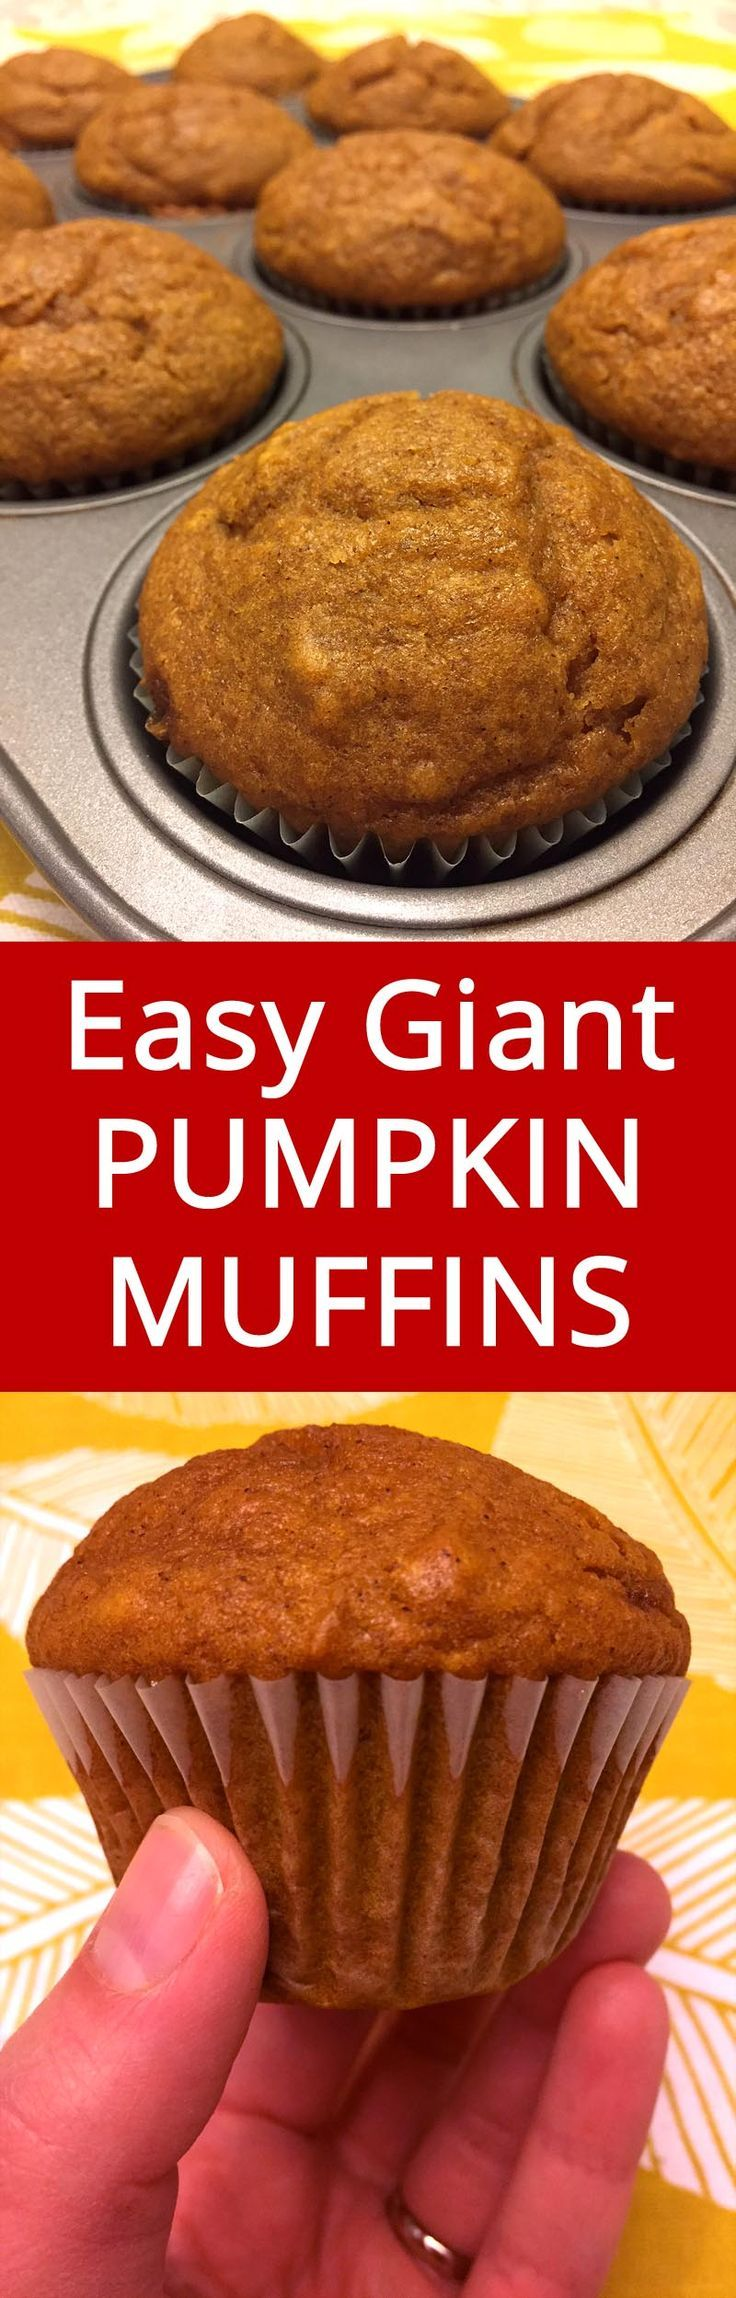 These pumpkin muffins are truly huge and moist, and the texture is best ever!  I love these muffins!   http://MelanieCooks.com